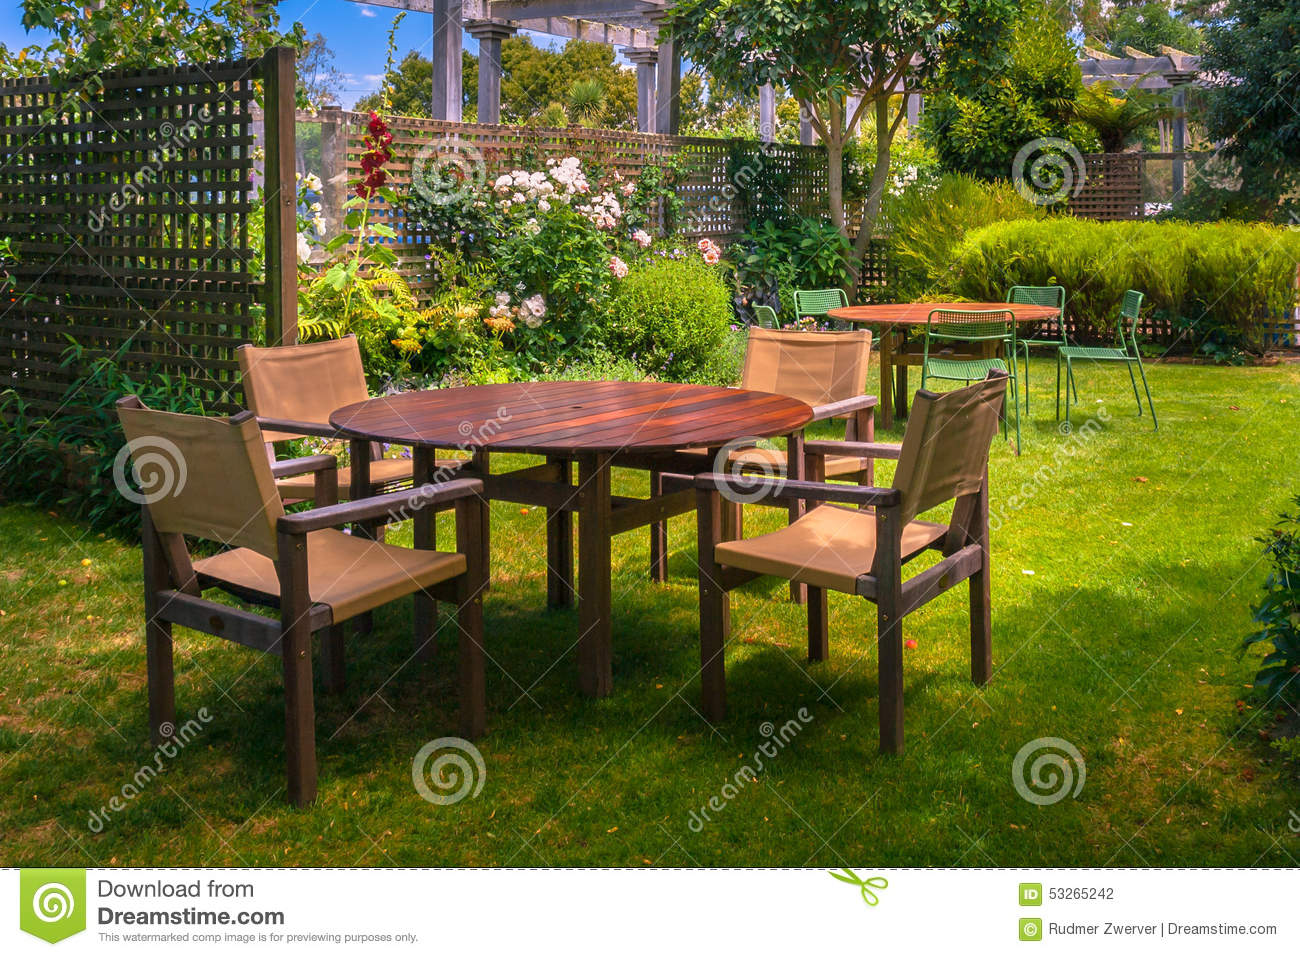 Shade For Sunny Backyard : Sunny Landscaped Garden with Wooden Dining Table Set in the Shade of